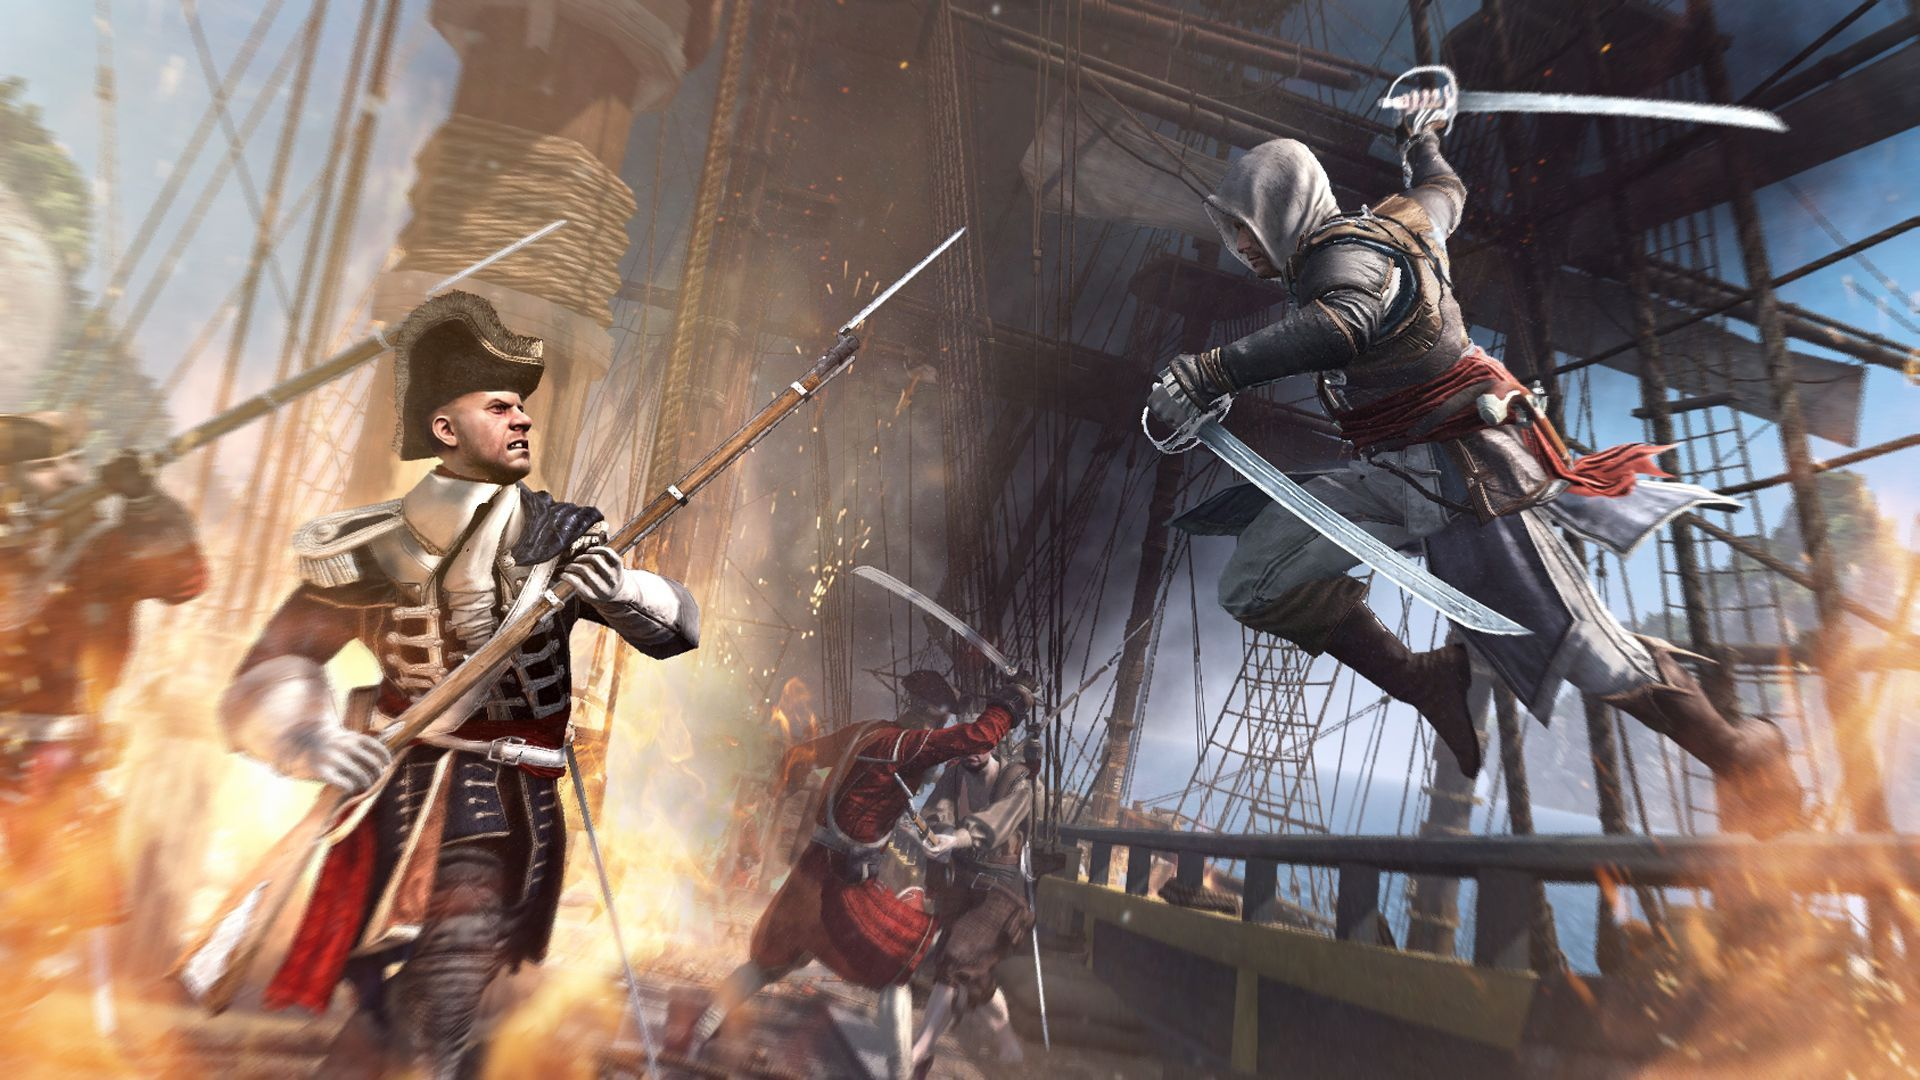 Assassin's Creed IV: Black Flag (PC) - 7